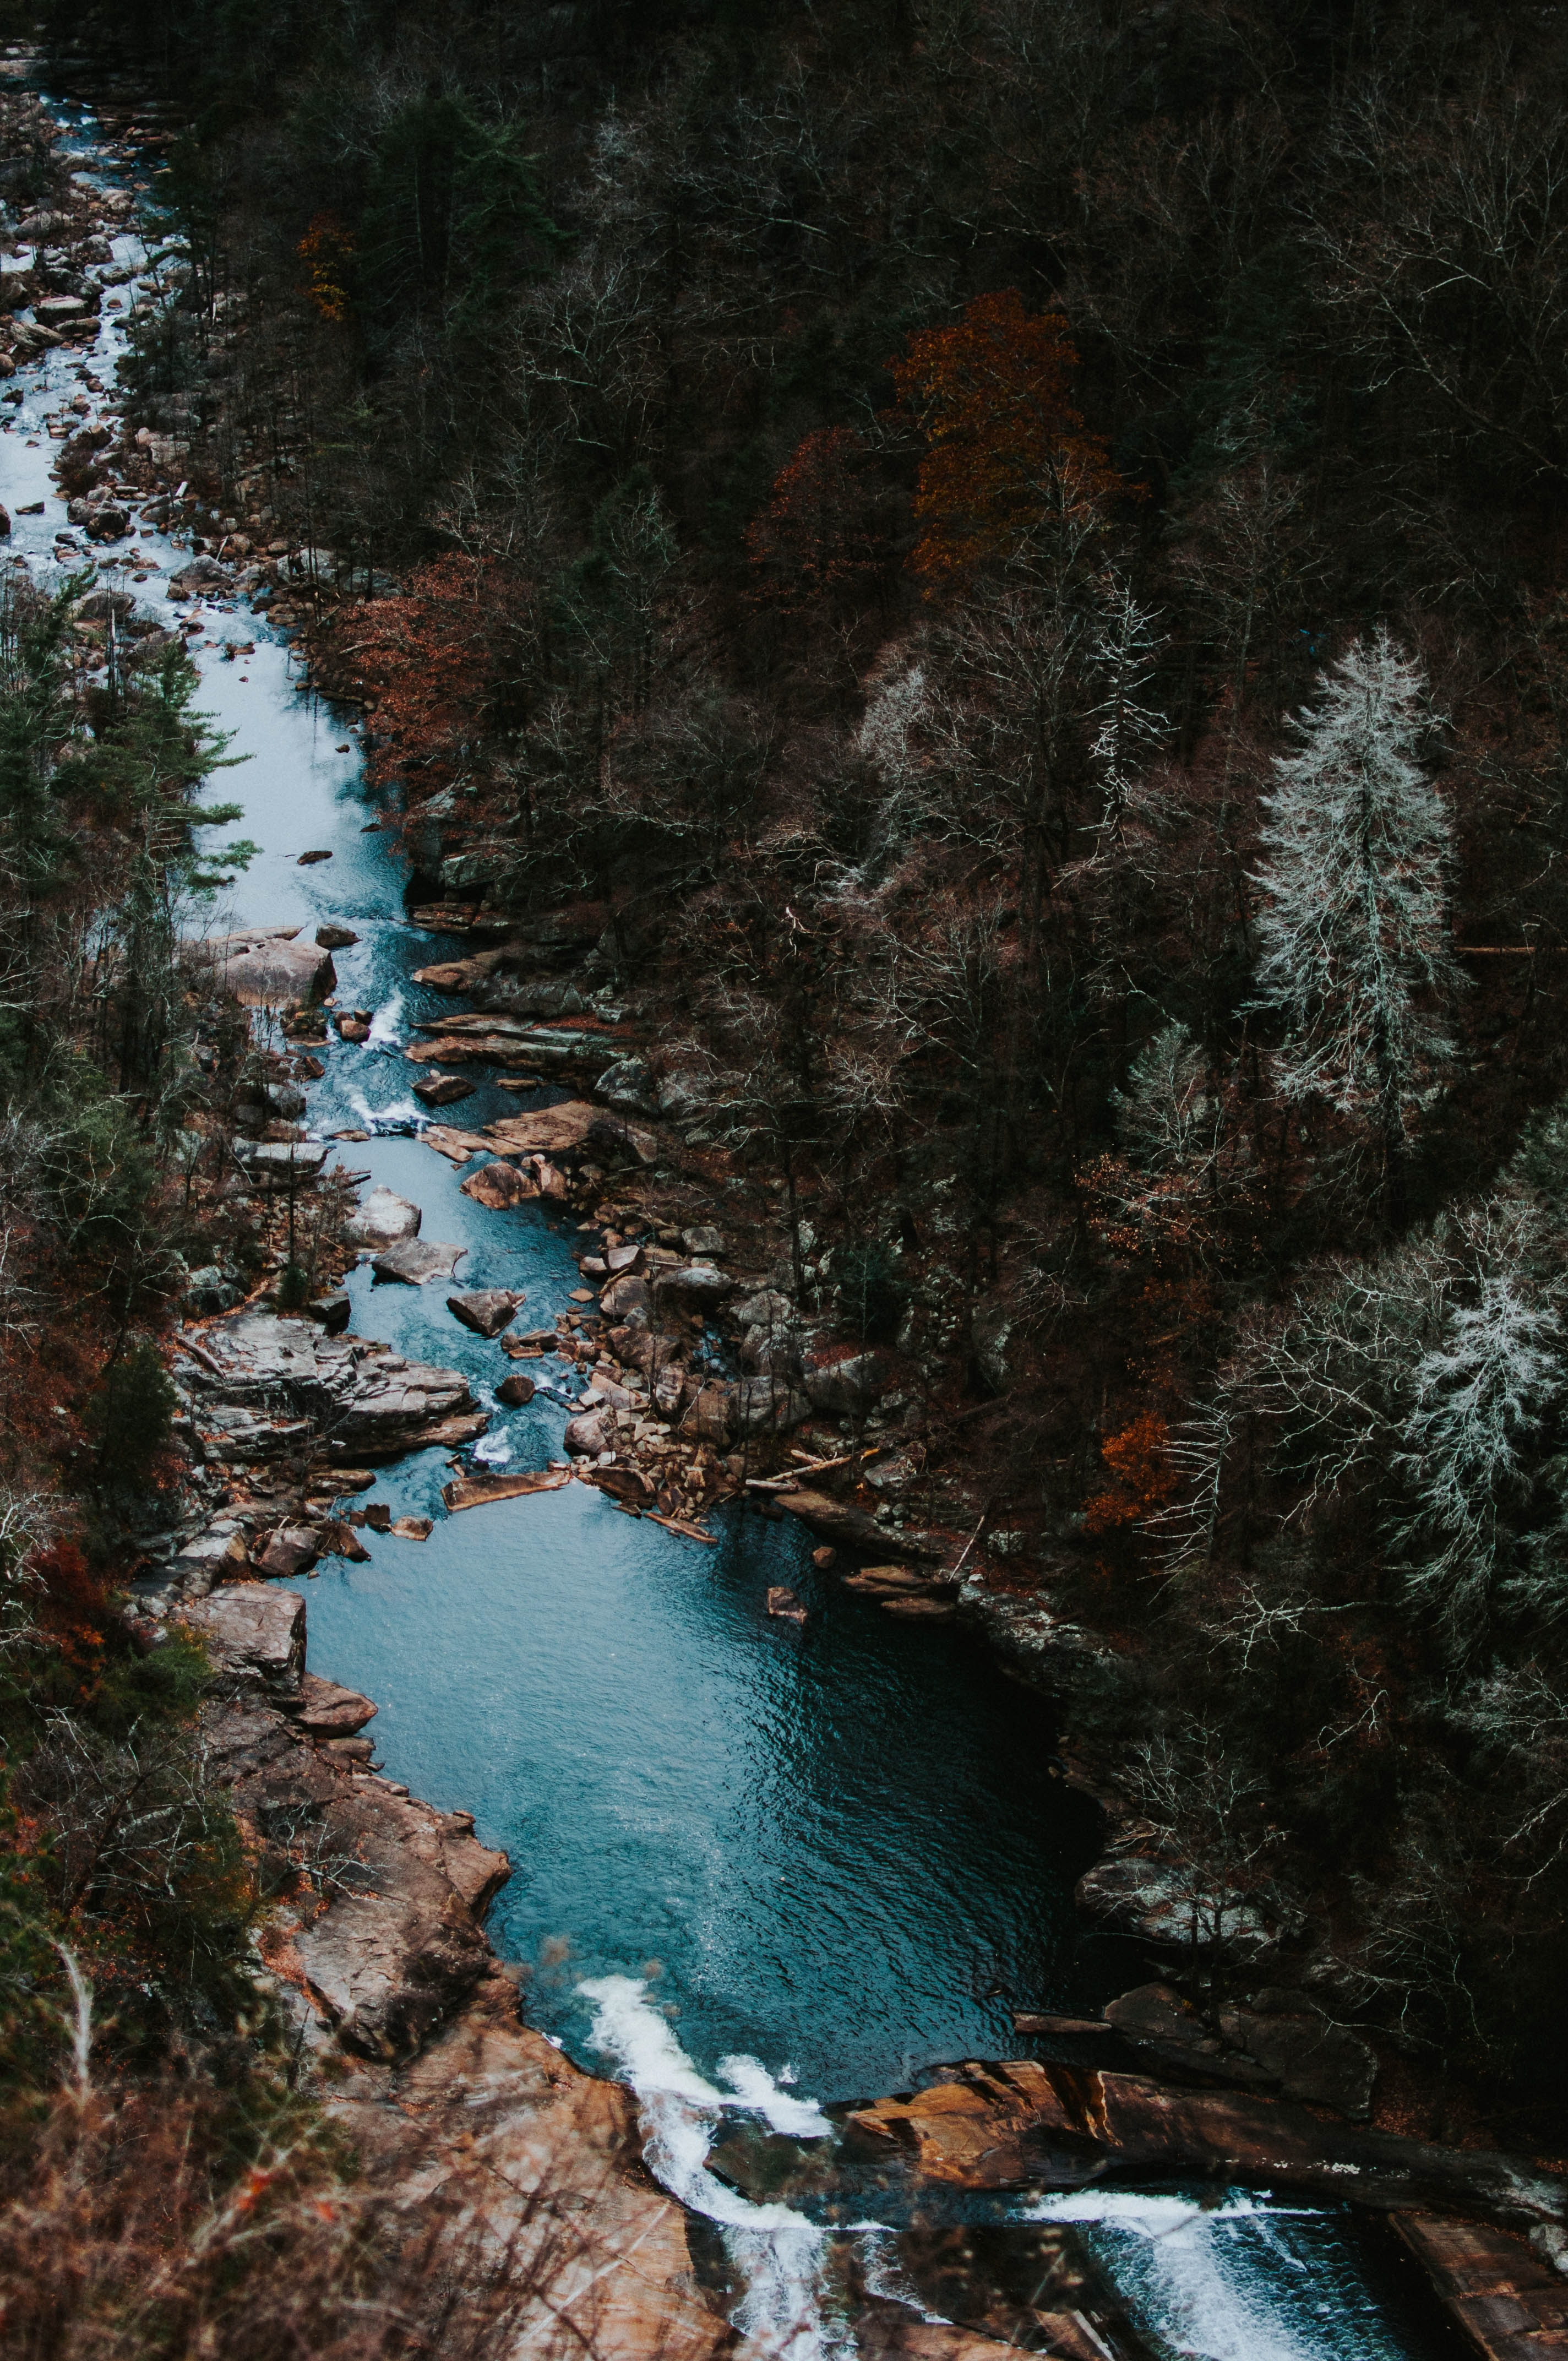 A drone shot of an azure stream on a rocky bed in a colorful autumn forest